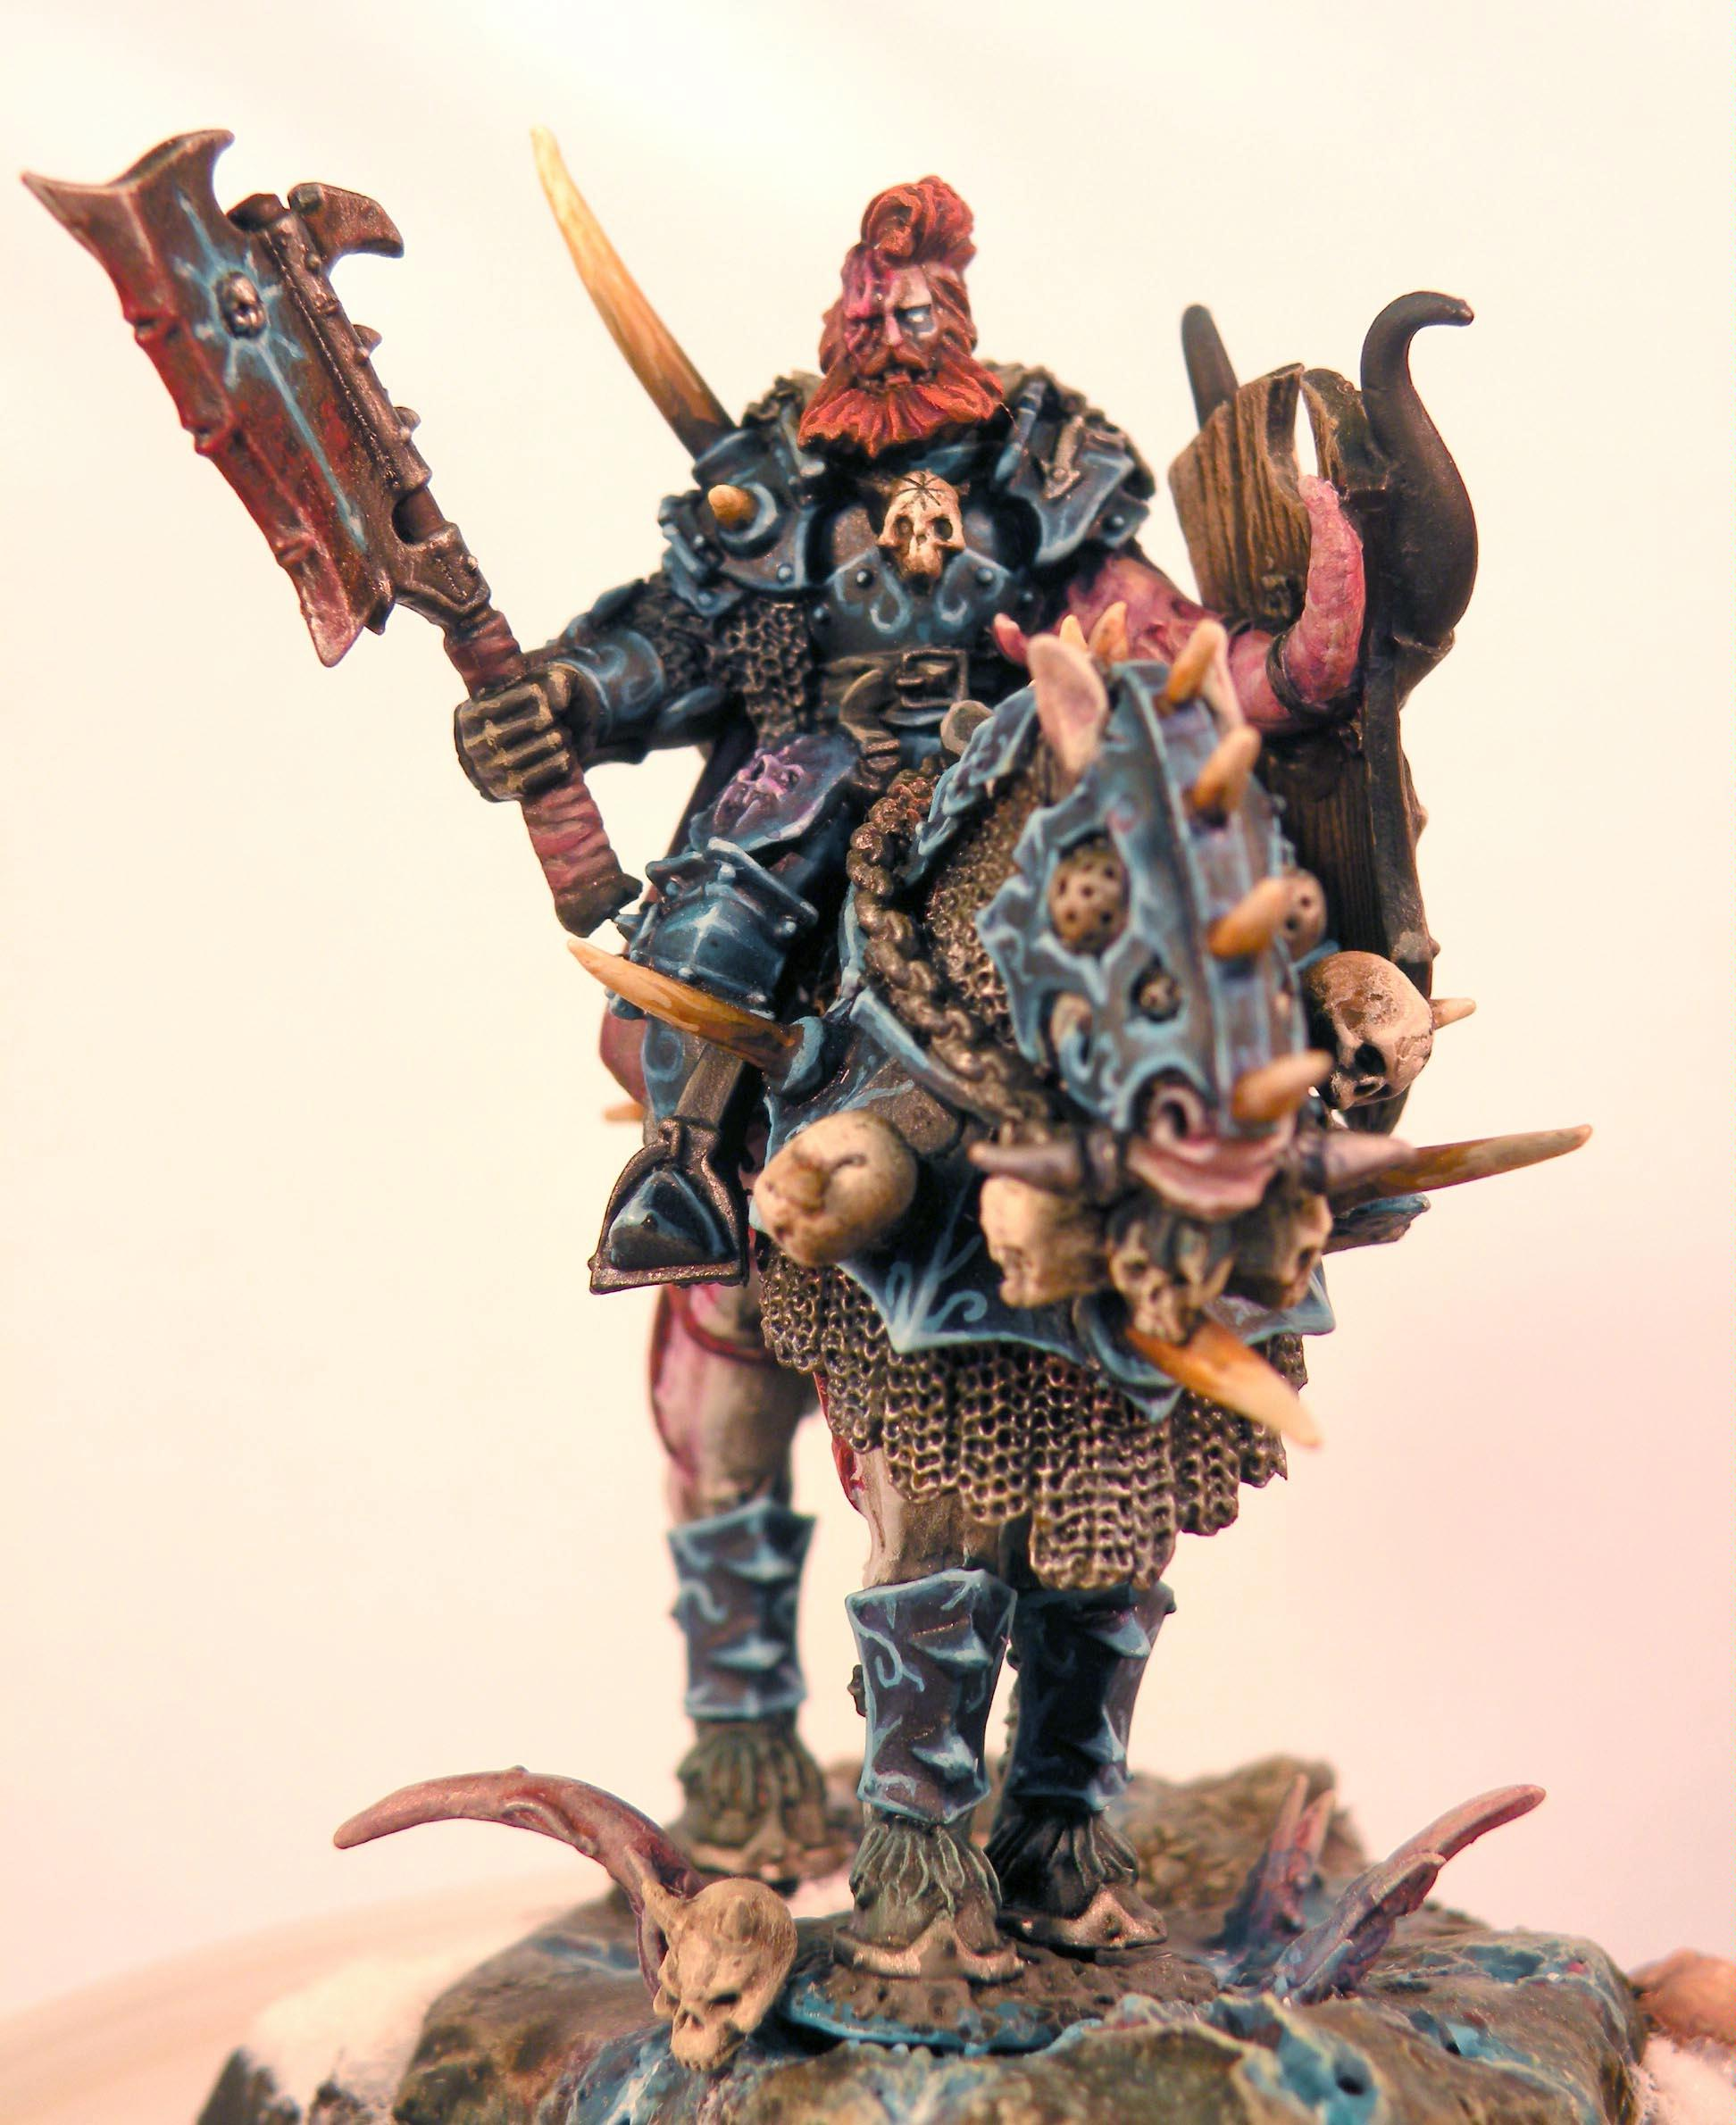 Chaos Lord, Deamonic Mount, Warhammer Fantasy, Warriors Of Chaos